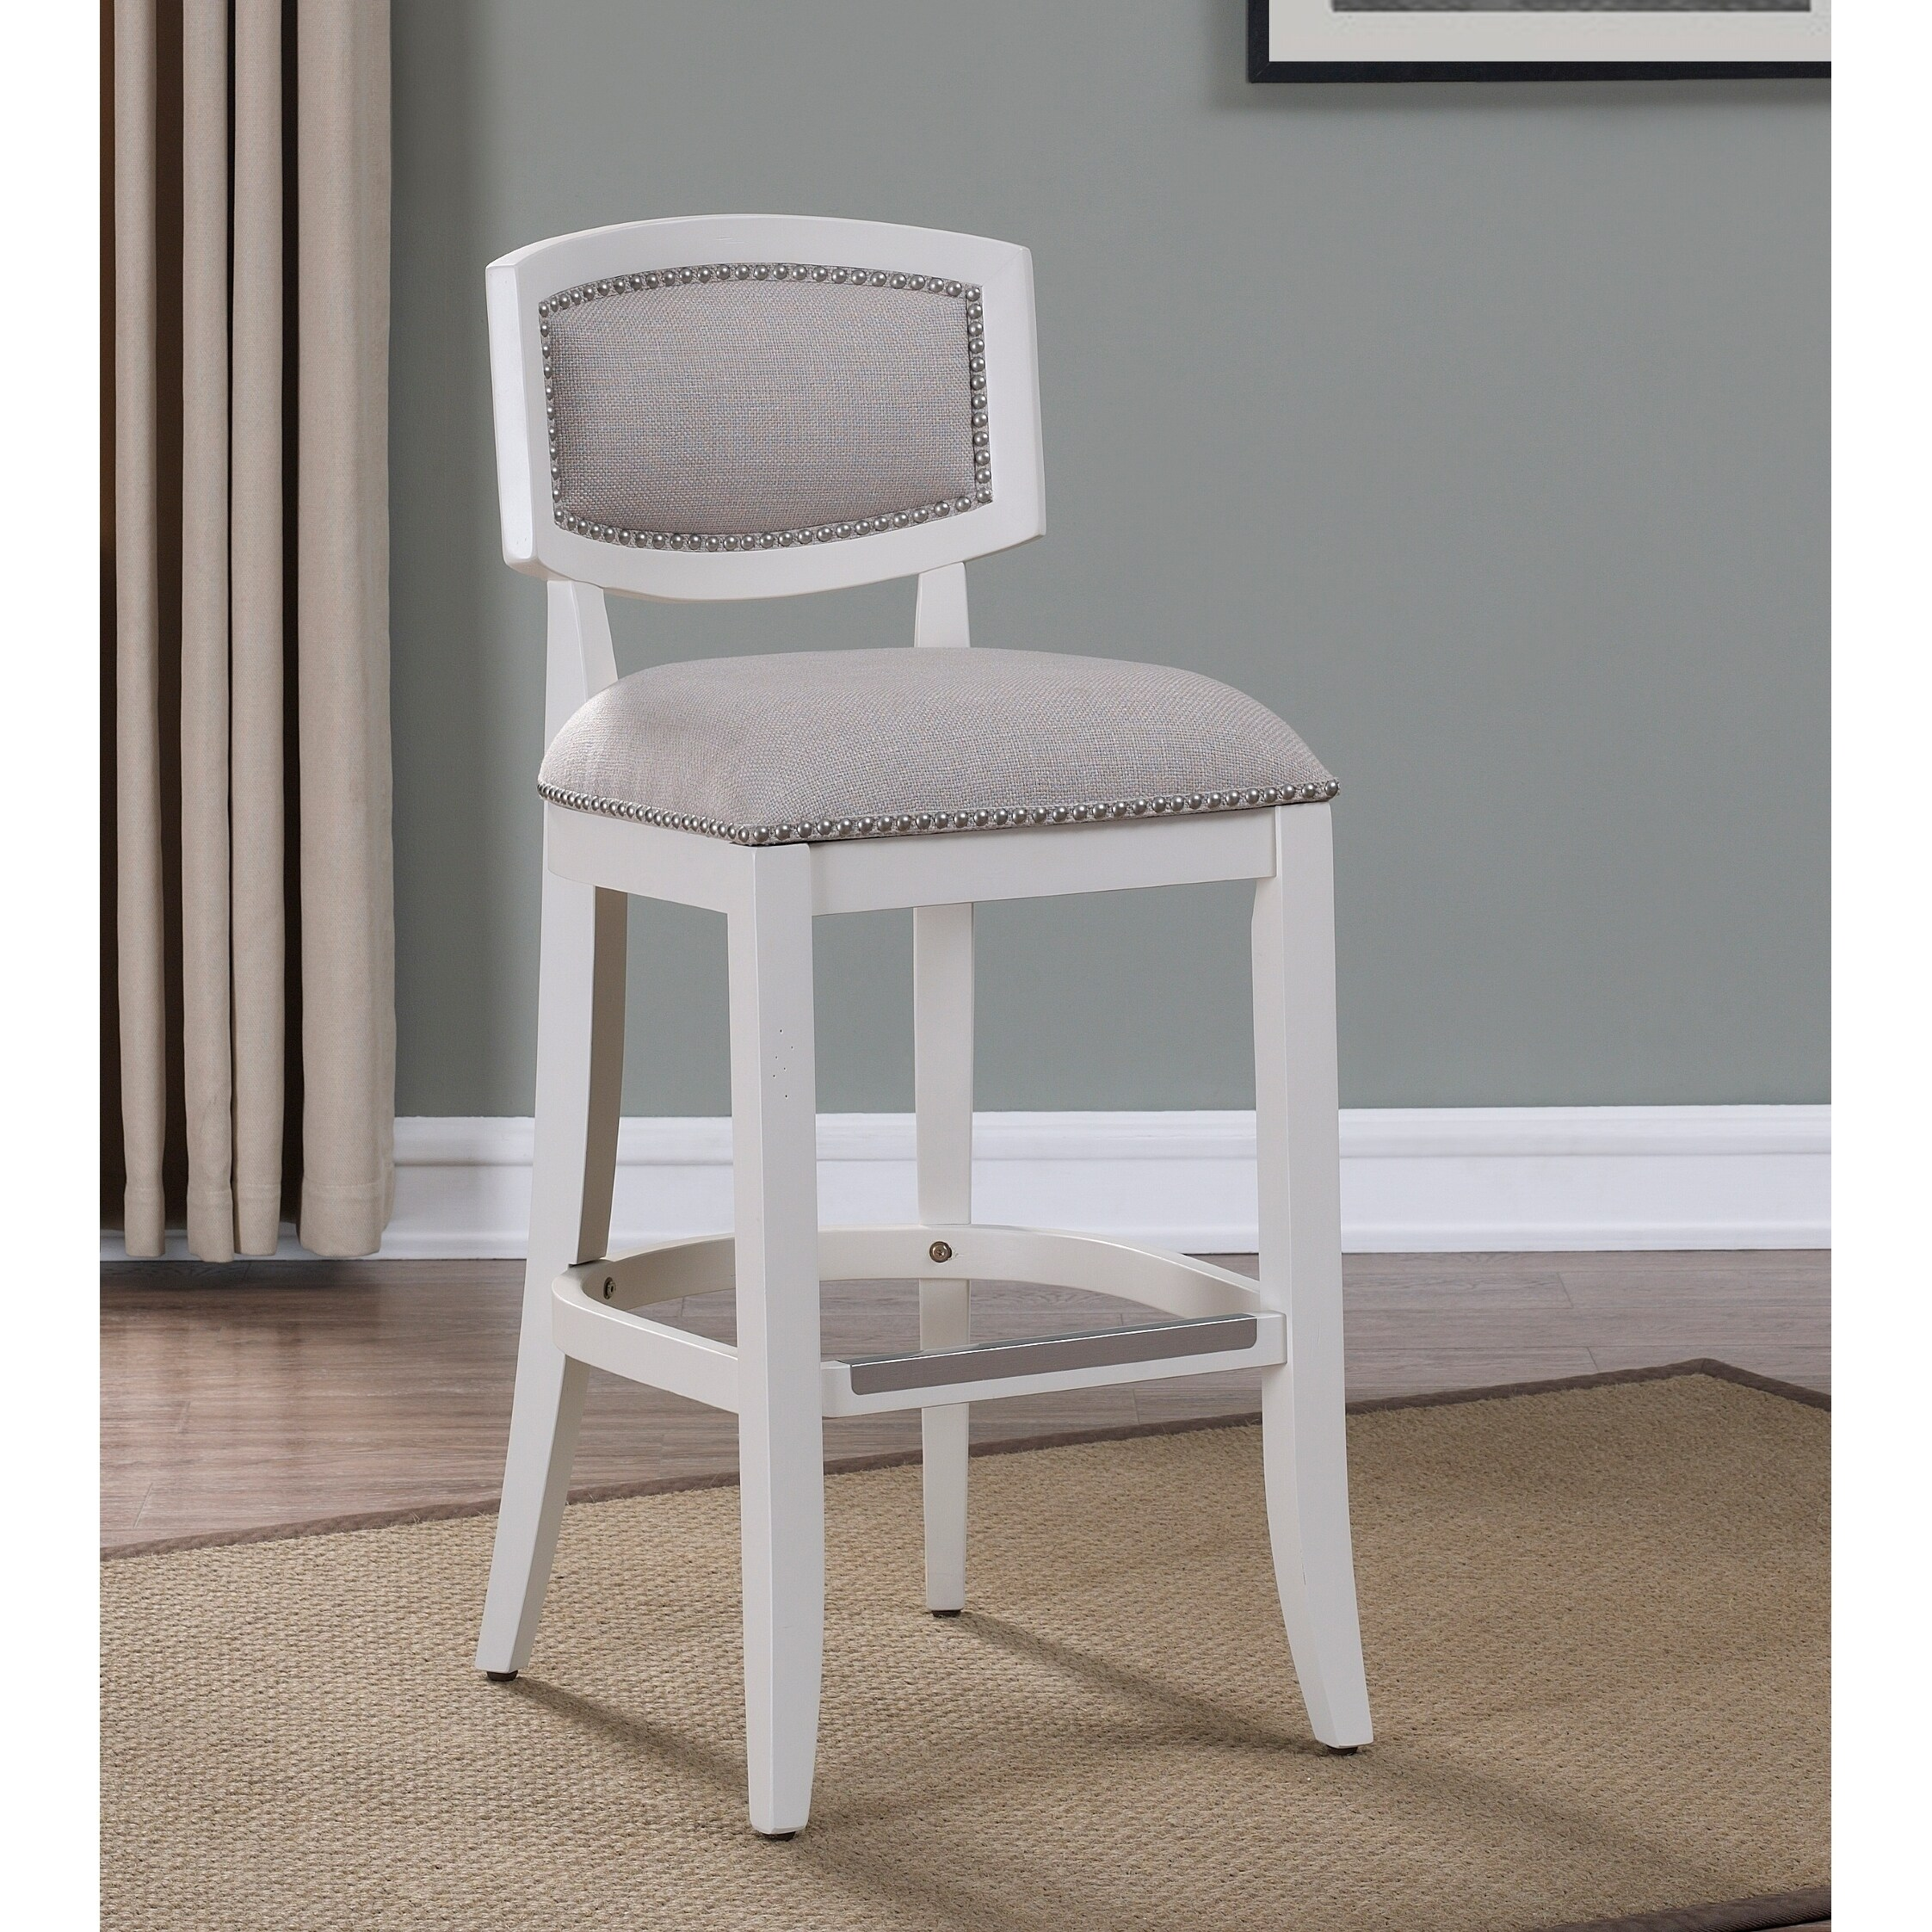 Aspen Antique White Counter Height Stool By Greyson Living On Free Shipping Today 22719136